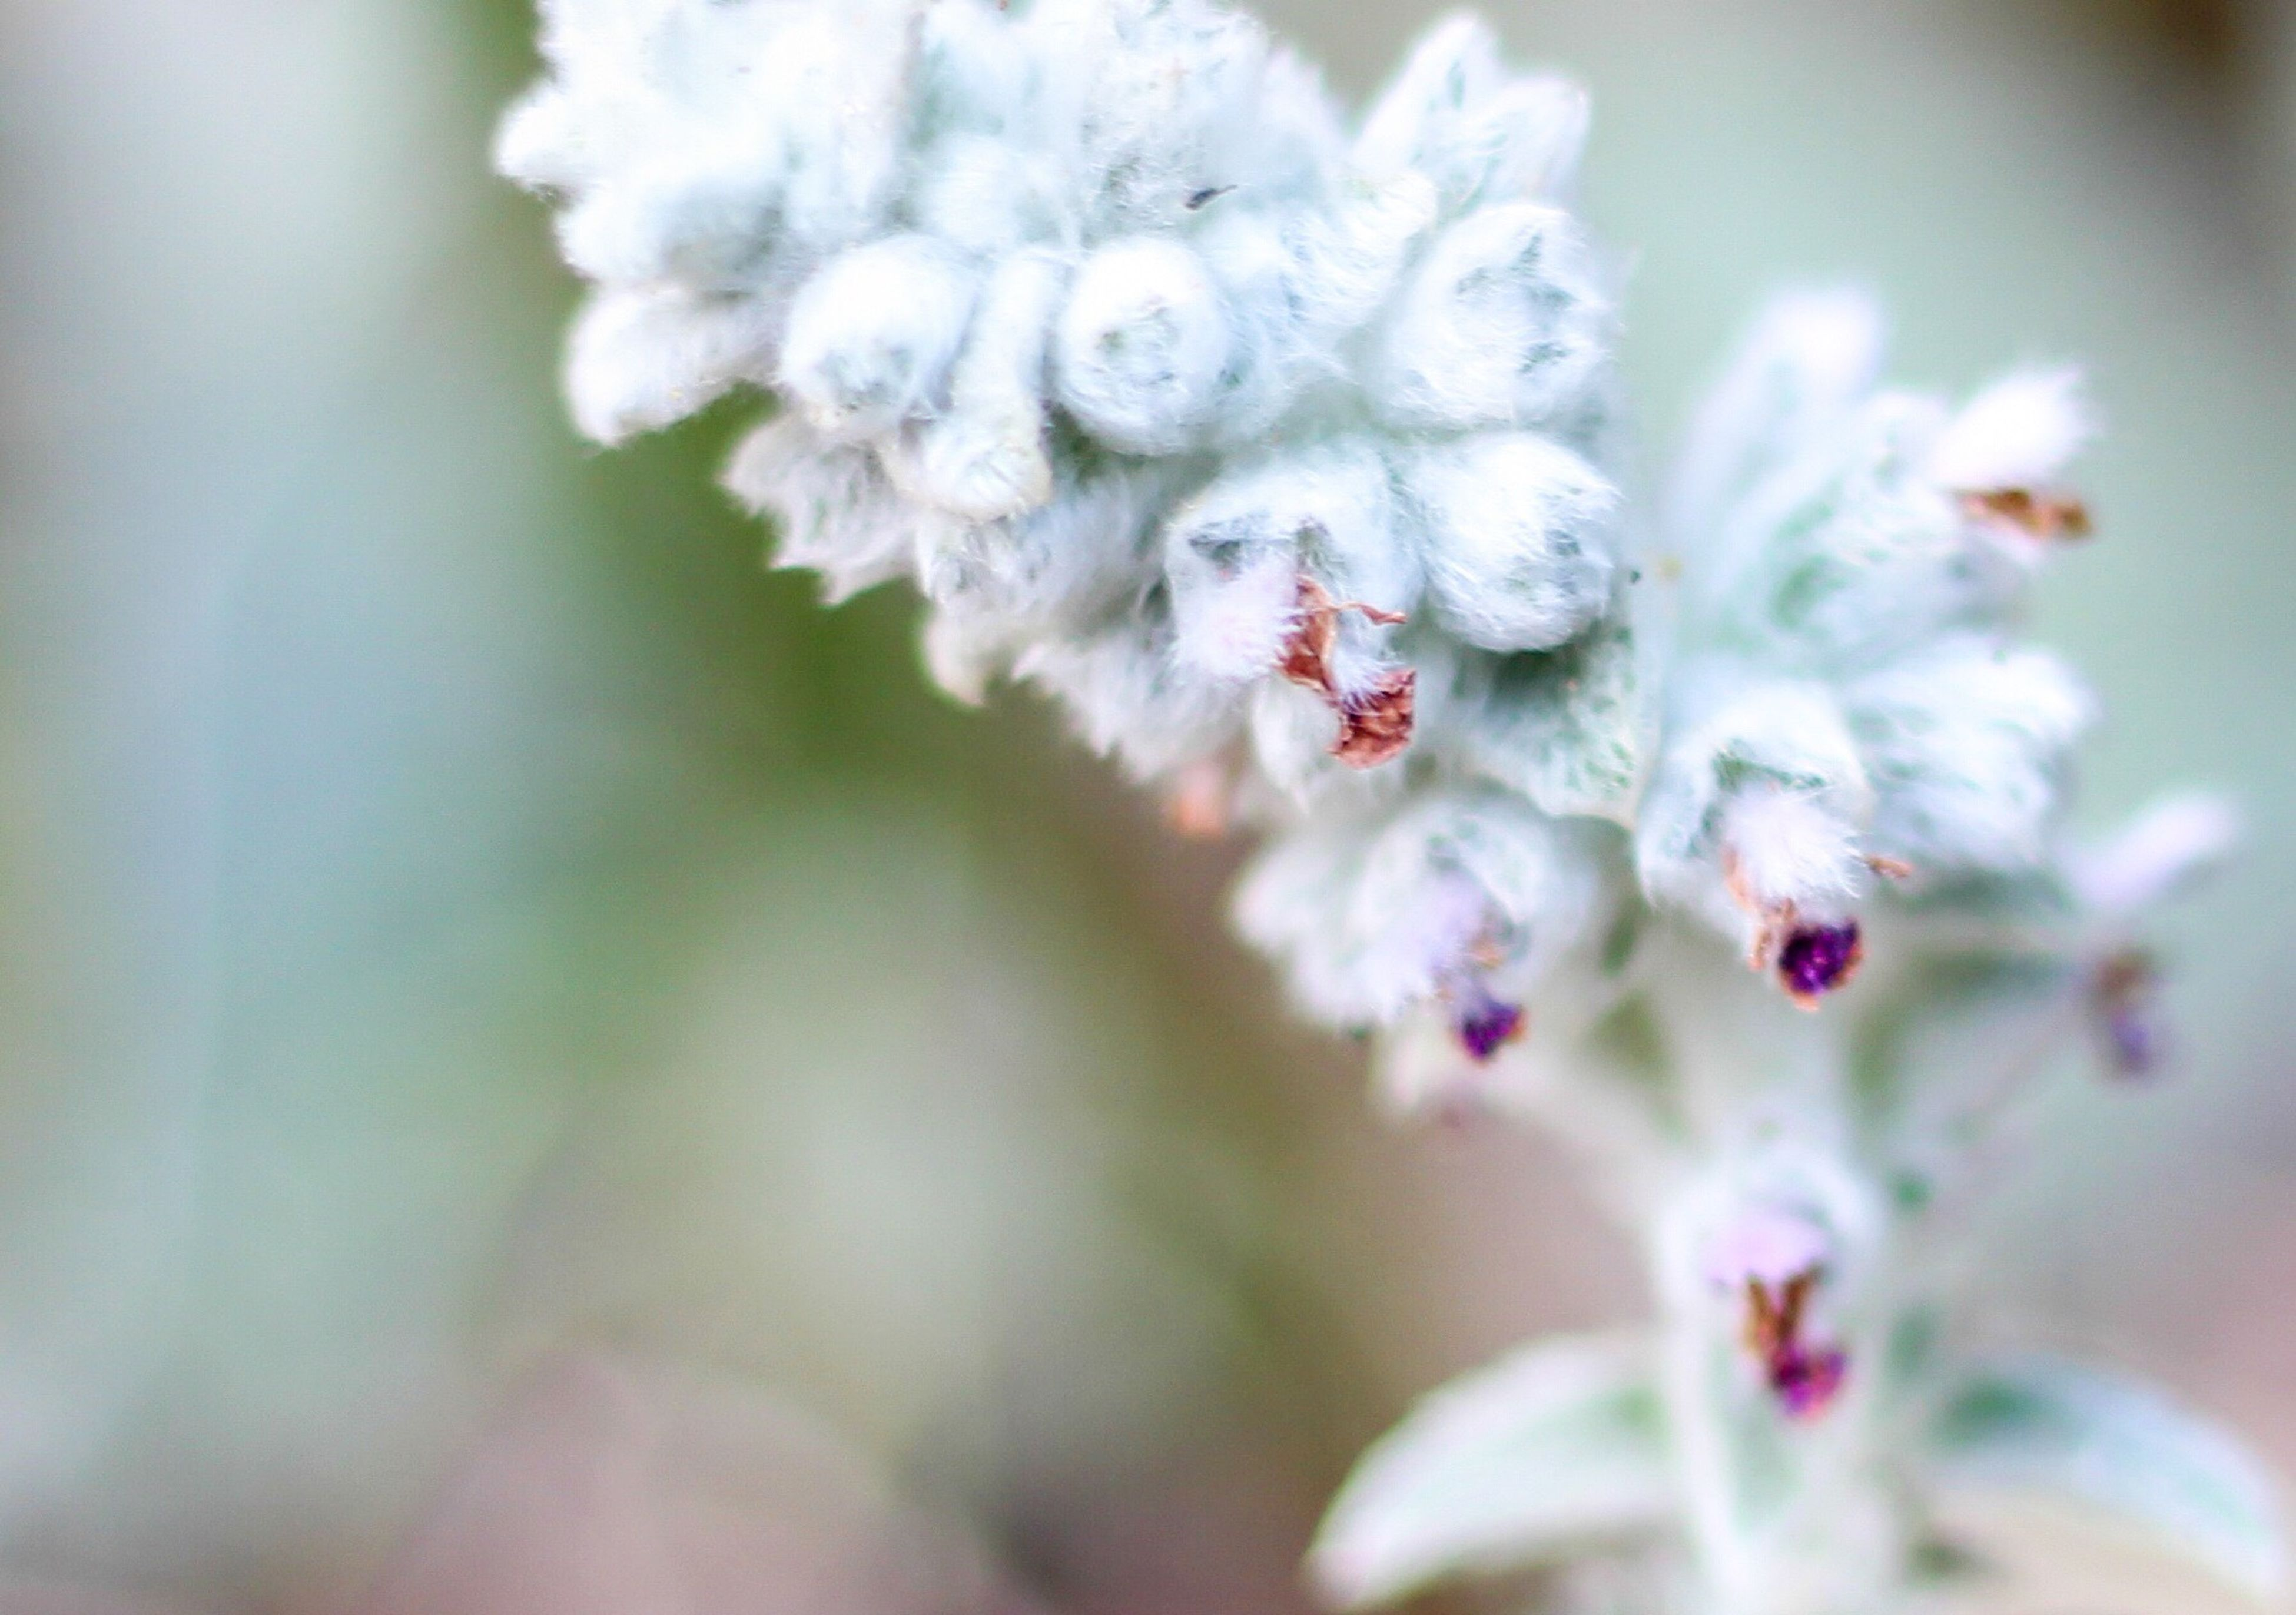 flower, freshness, fragility, petal, focus on foreground, close-up, growth, flower head, beauty in nature, white color, nature, selective focus, blooming, blossom, in bloom, bud, plant, cherry blossom, stem, springtime